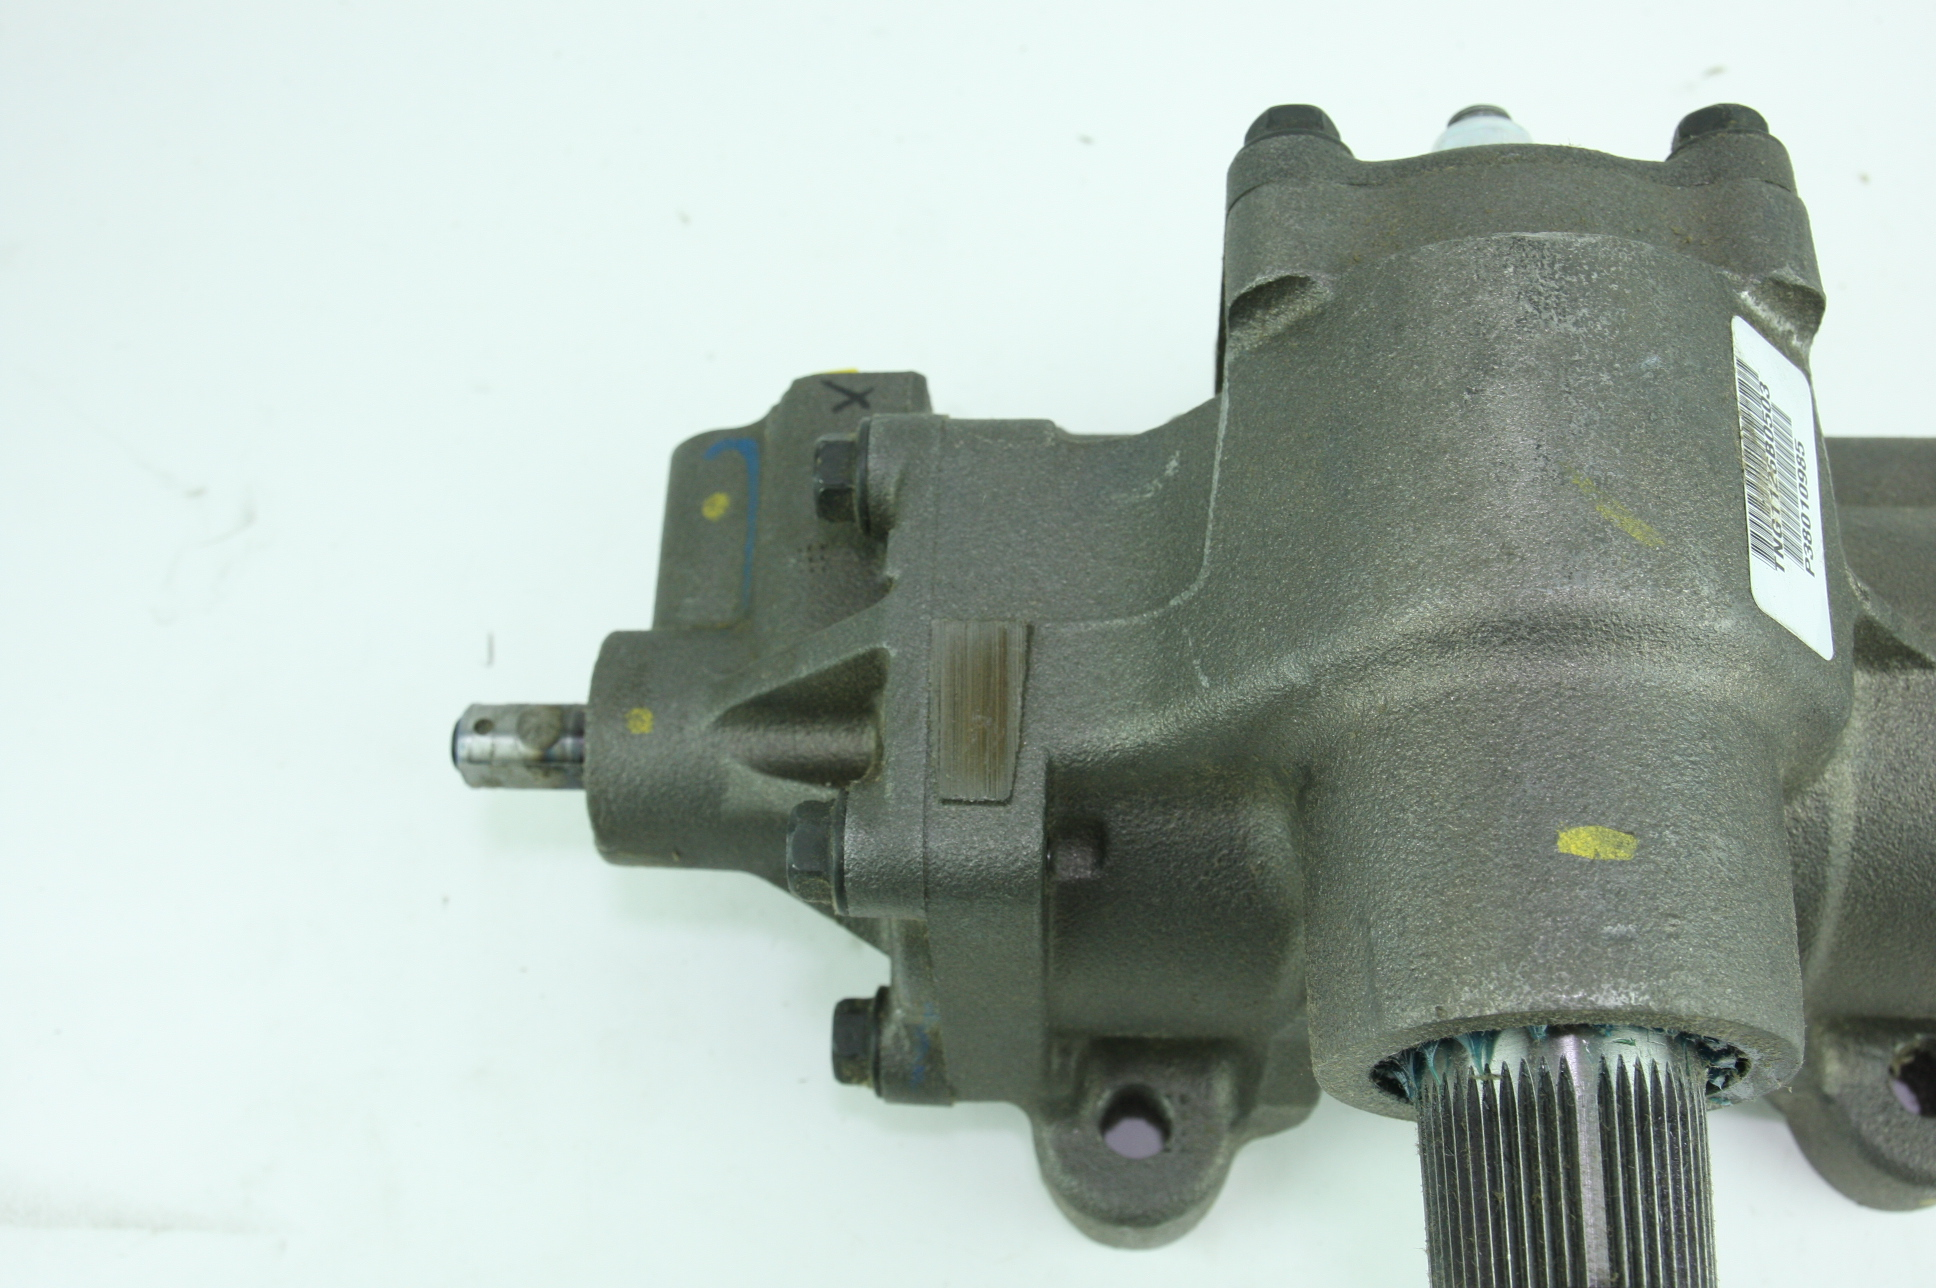 New Genuine OEM ACDelco 84315660 GM Reman Steering Gear Fast Free Shipping - image 10